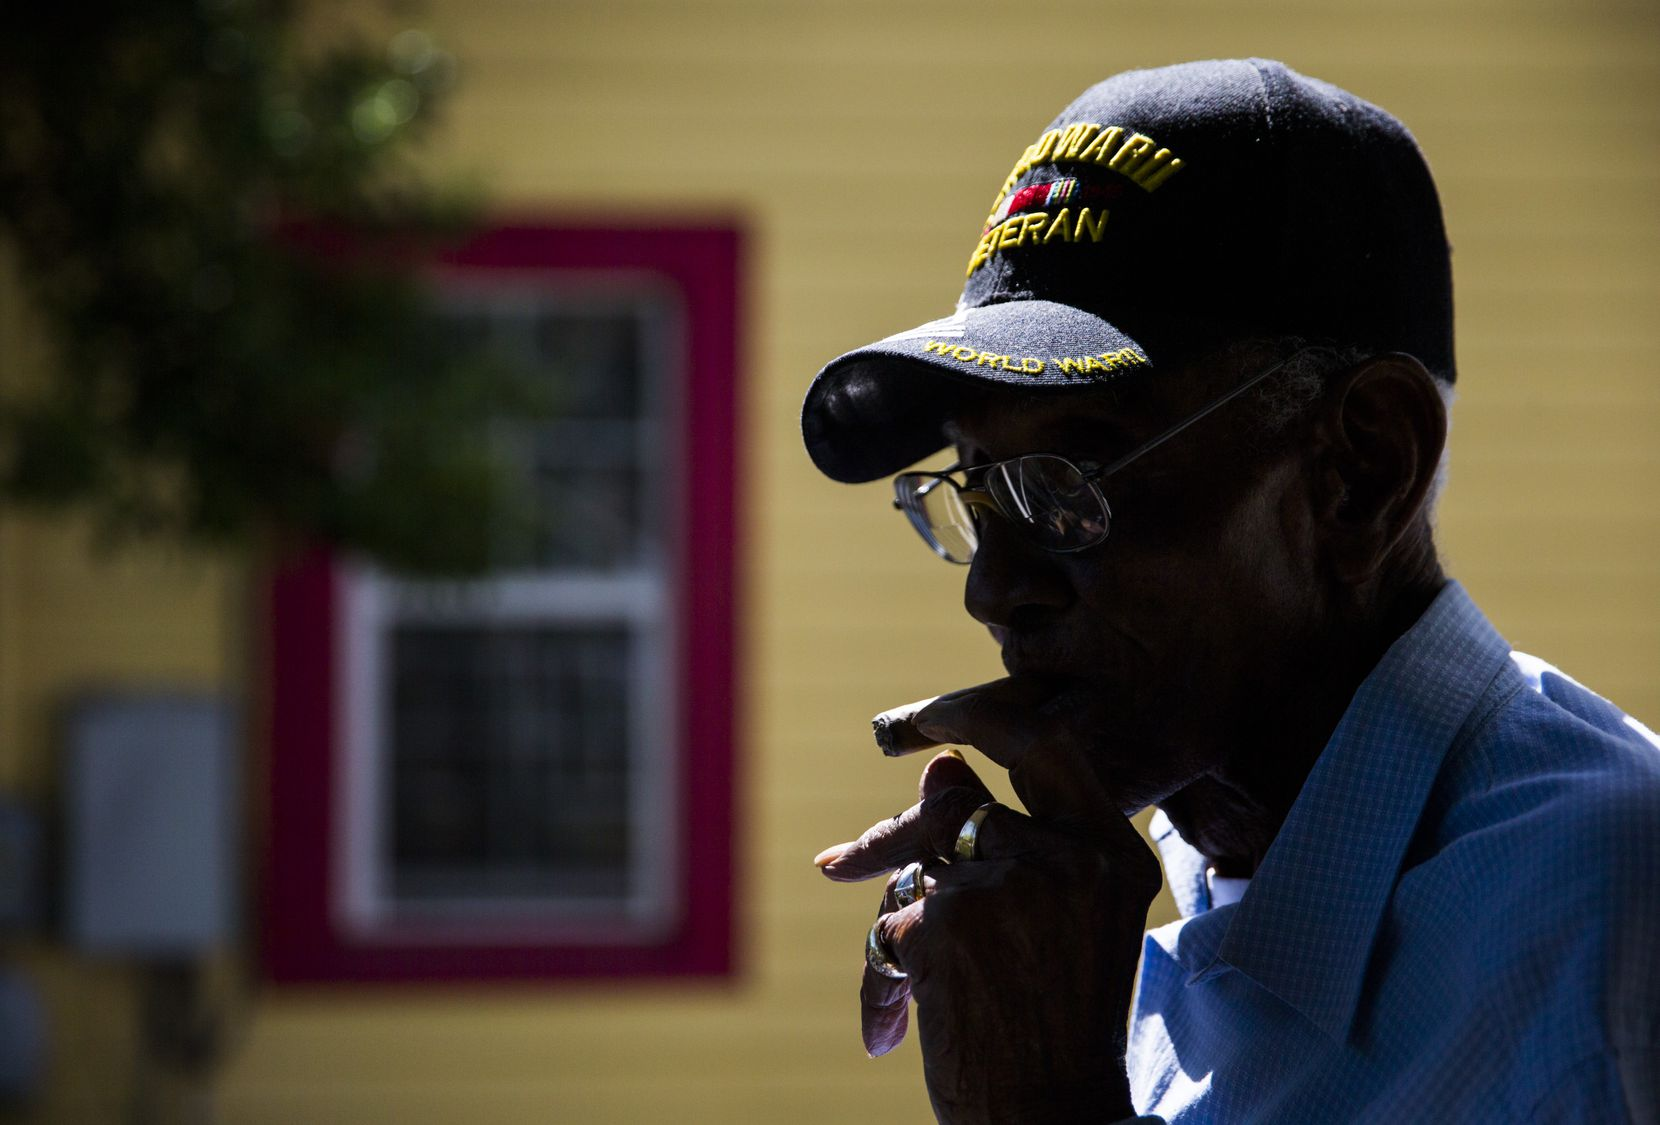 U.S. Army veteran Richard Overton, then 111, sat on the front porch smoking a cigar on May 5, 2018, at his home in Austin.